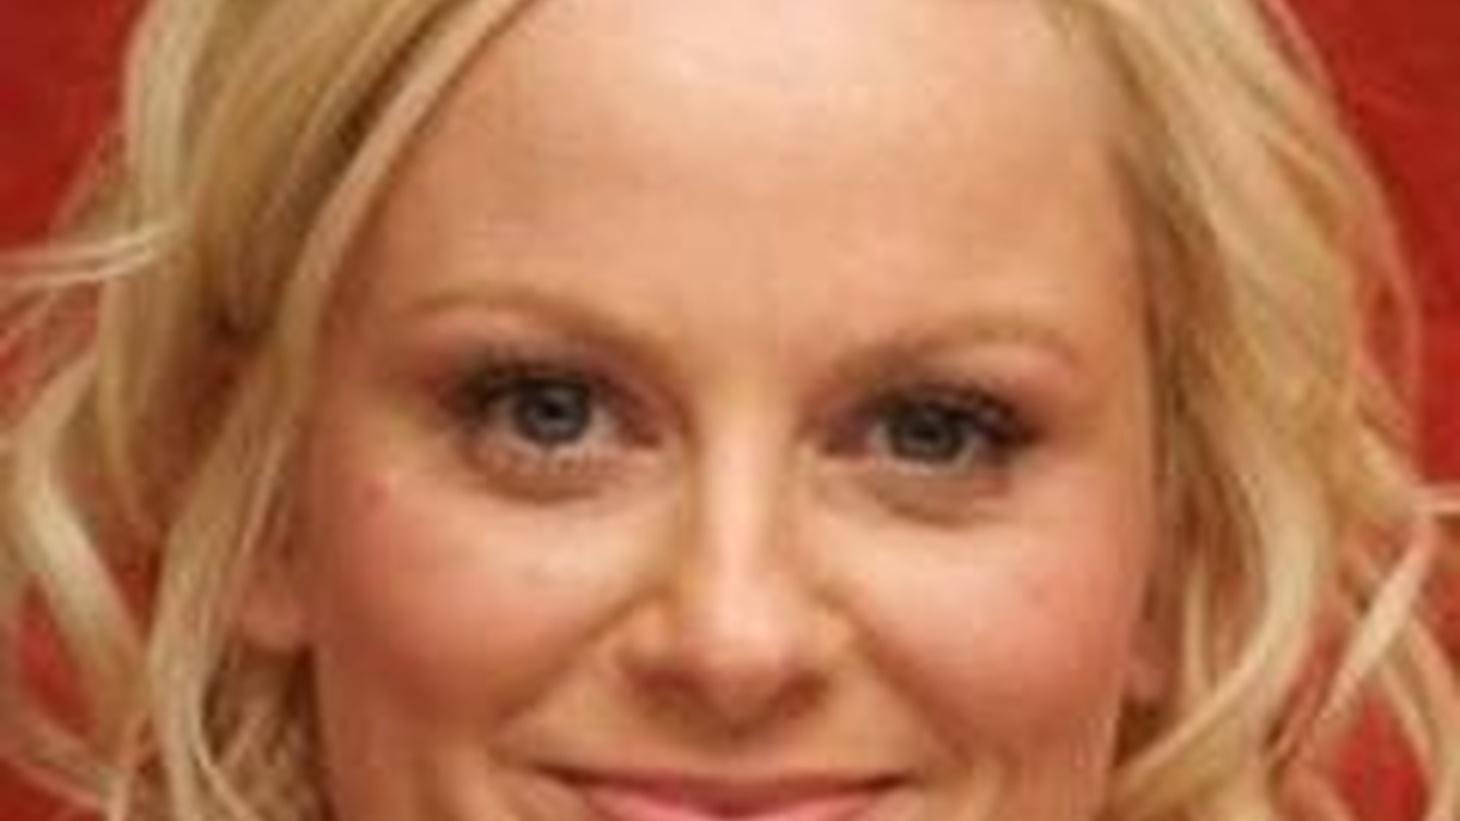 Parks and Recreation star Amy Poehler on her early days as an improv comedian, her feelings toward Lorne Michaels and her marriage to another very funny individual.